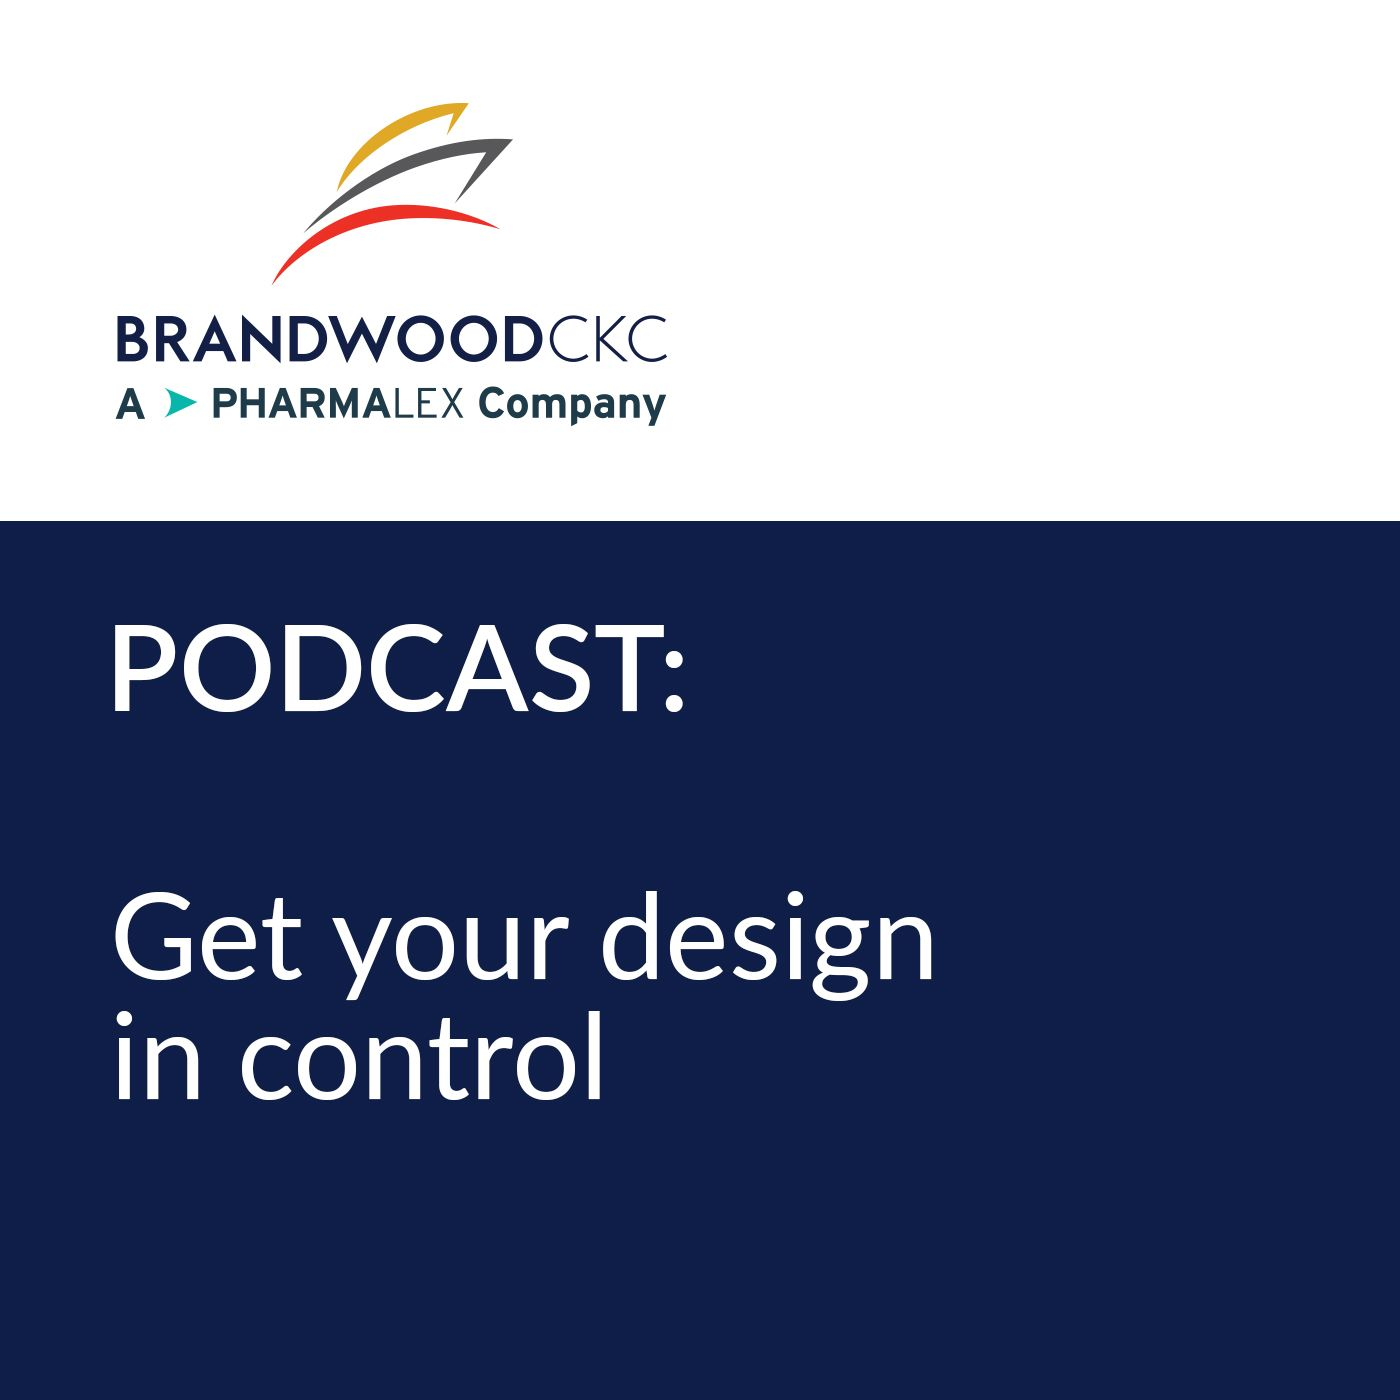 Get Your Design In Control